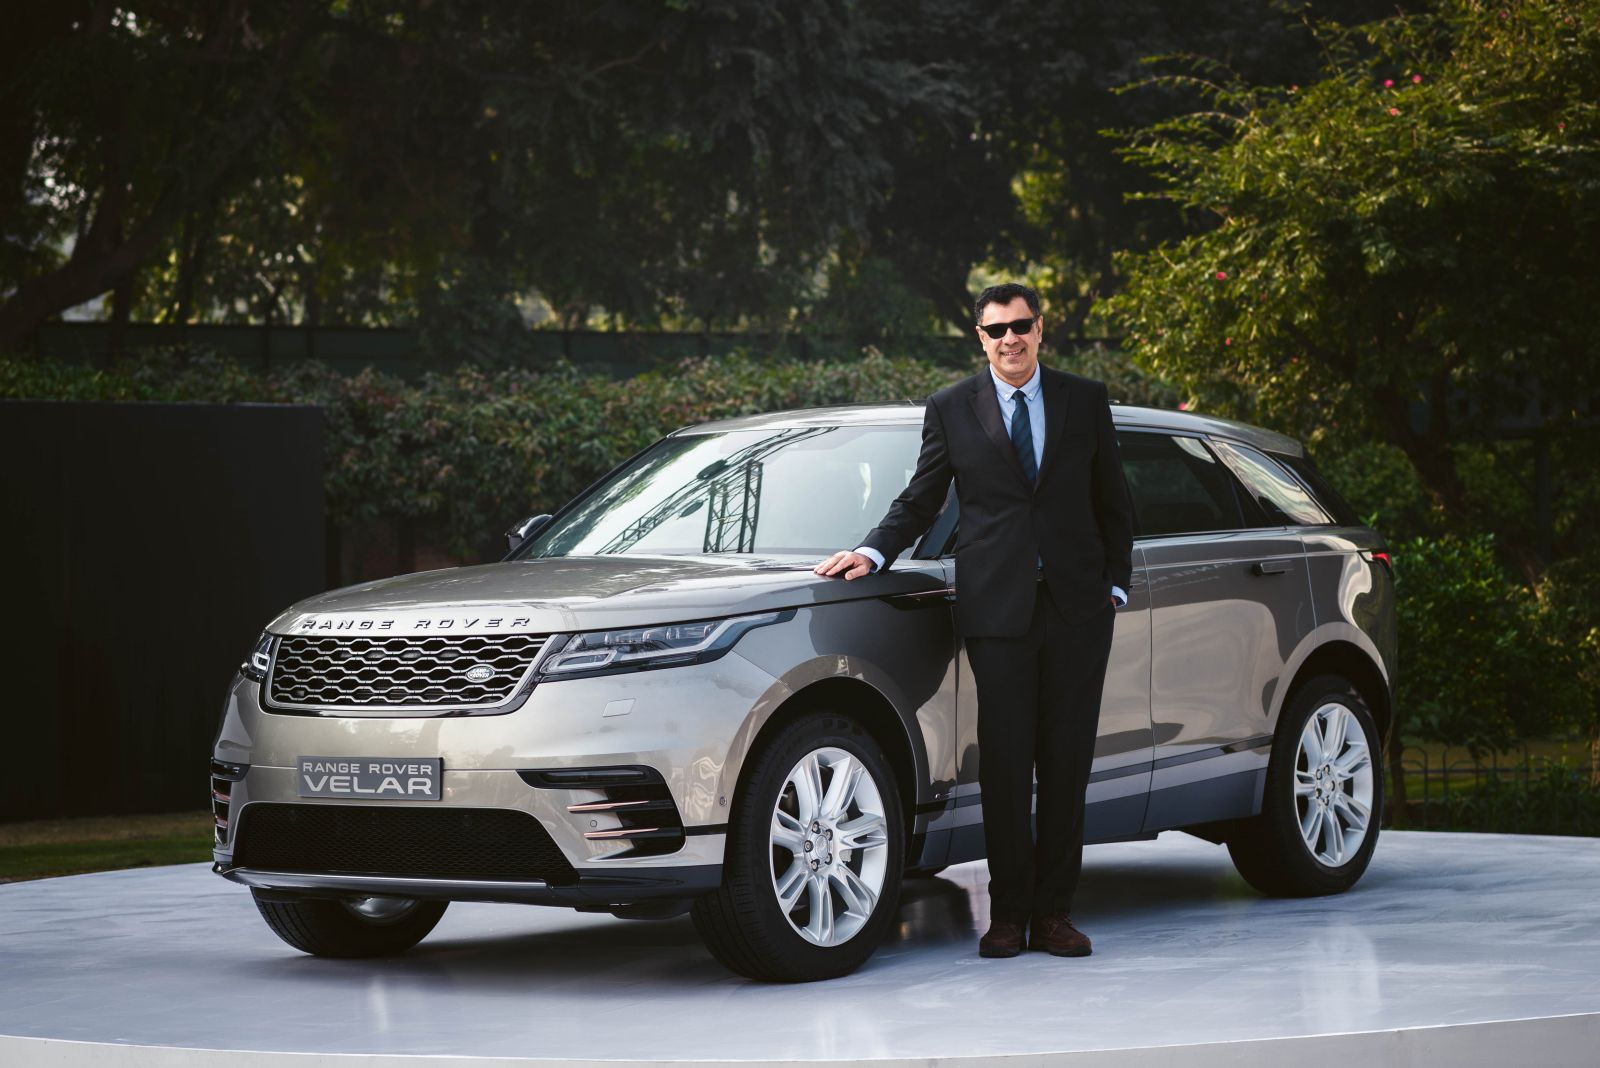 new 2018 range rover velar launched in india priced at. Black Bedroom Furniture Sets. Home Design Ideas